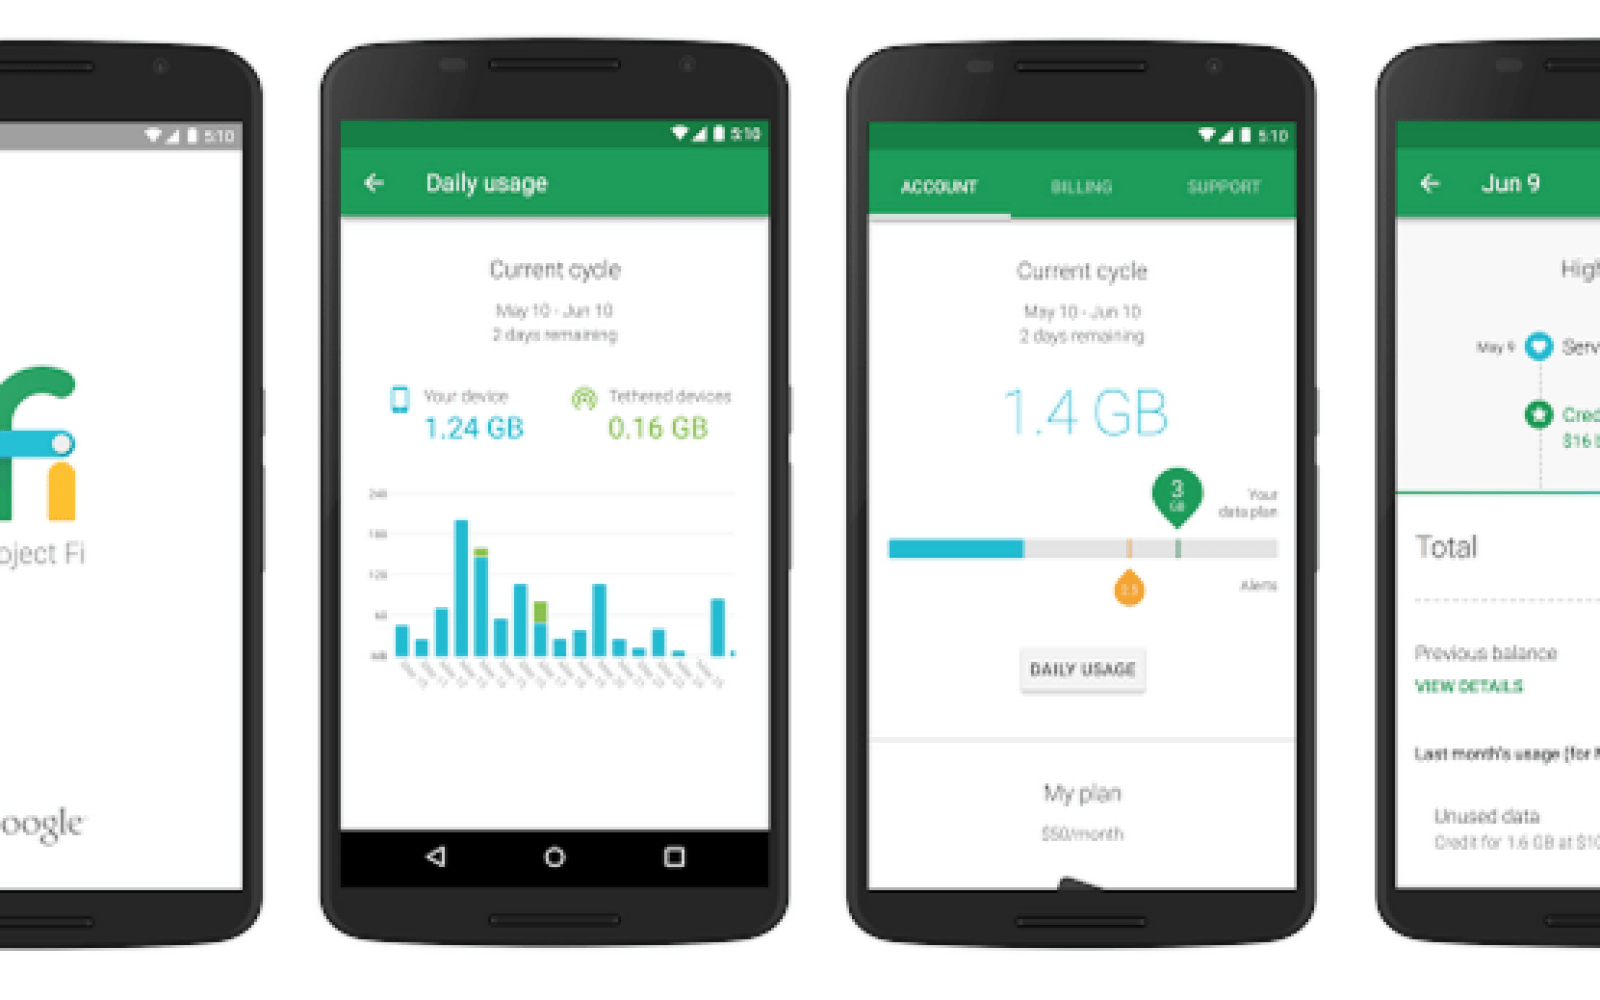 Google officially announces its mobile network service